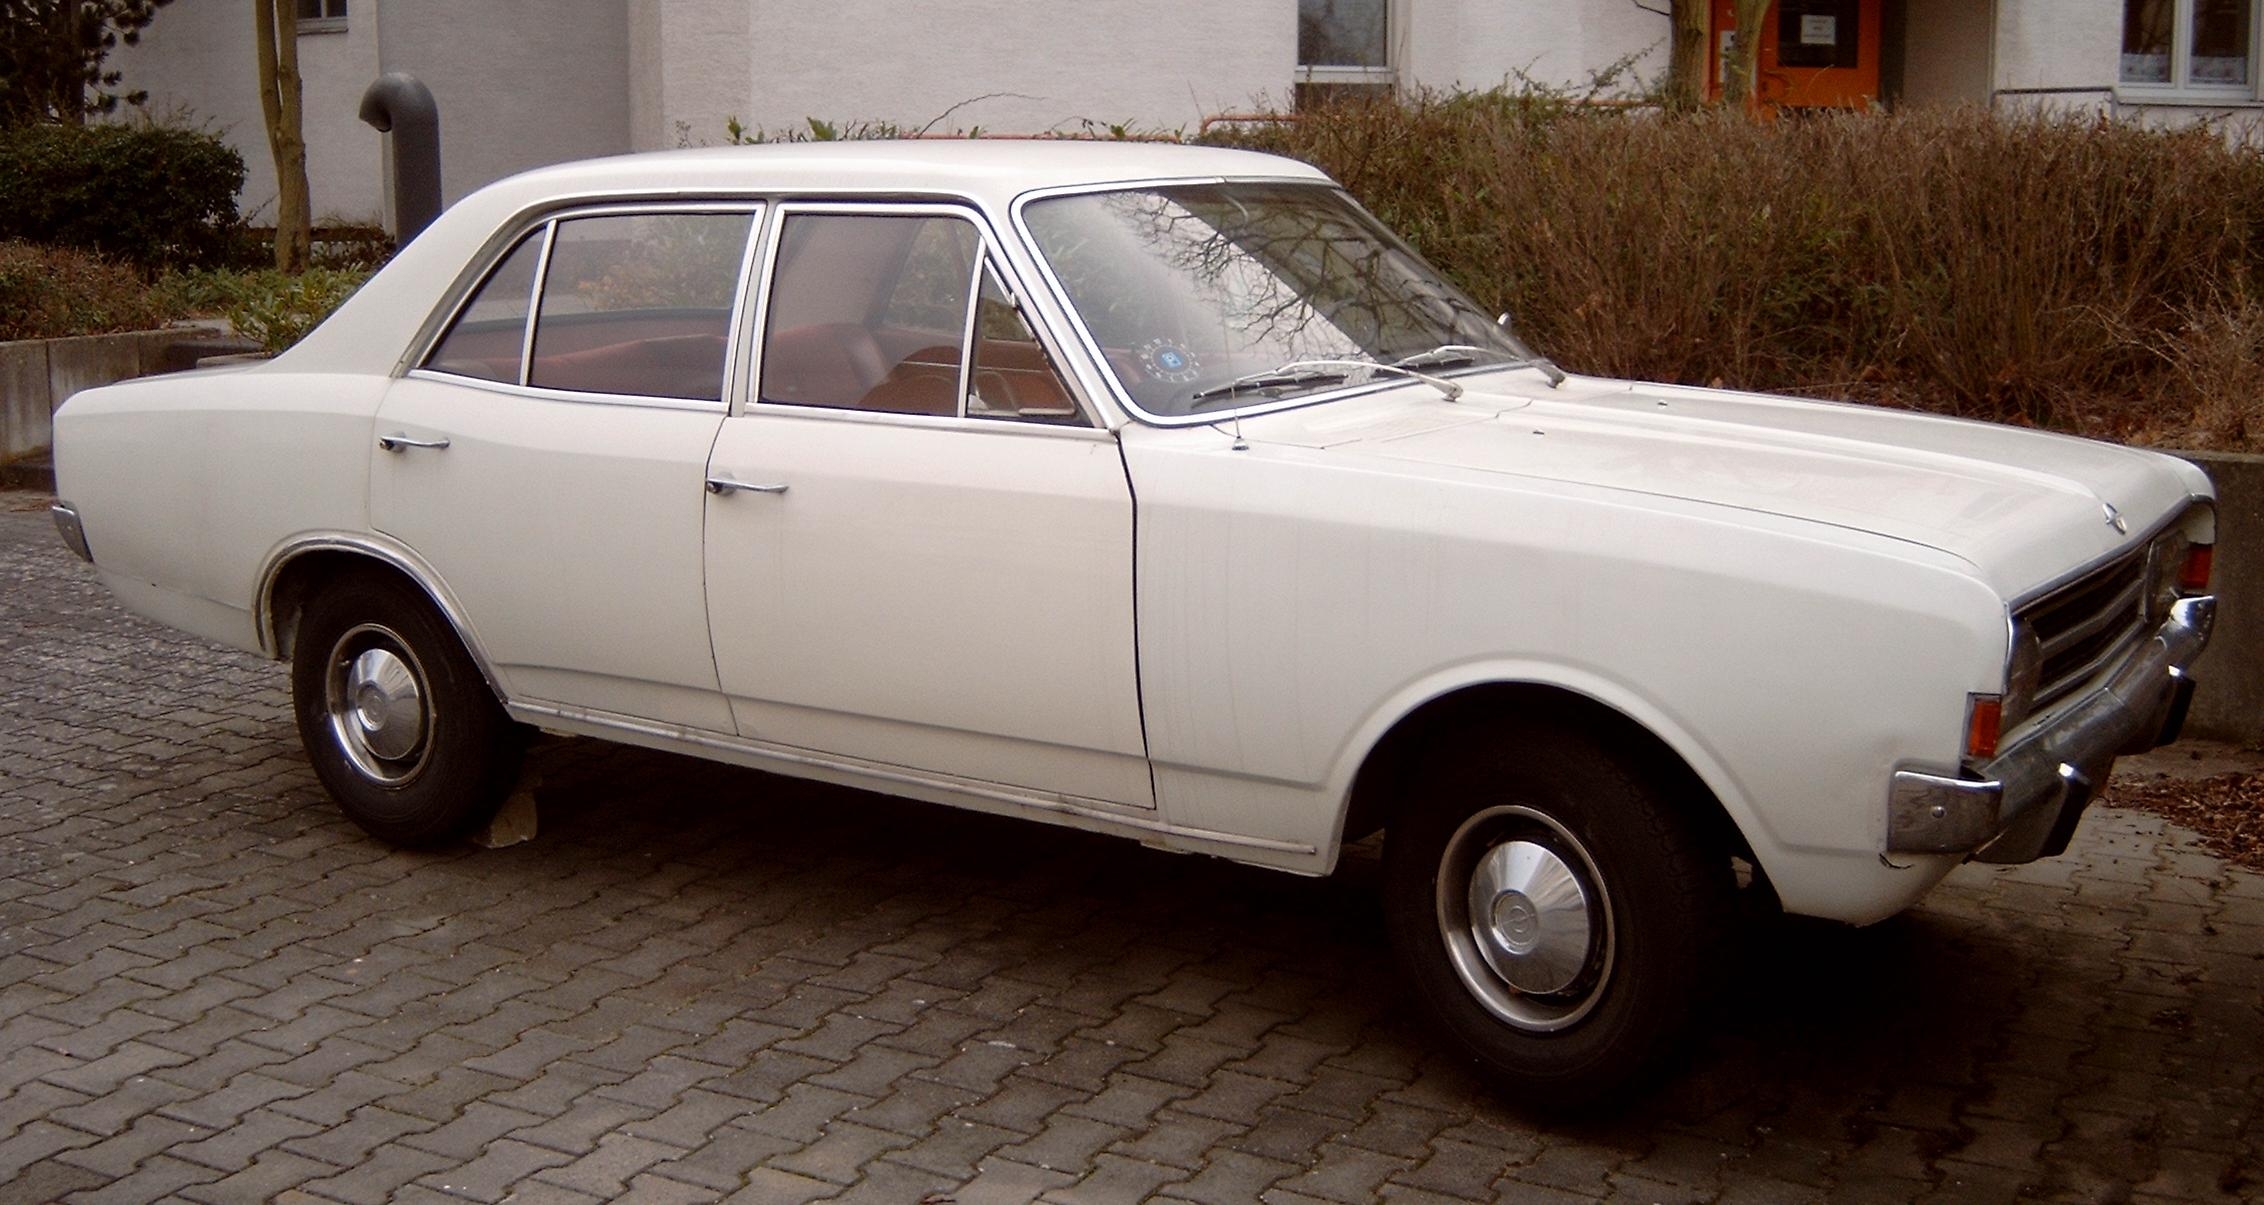 FileOpel Rekord vJPG  Wikimedia Commons